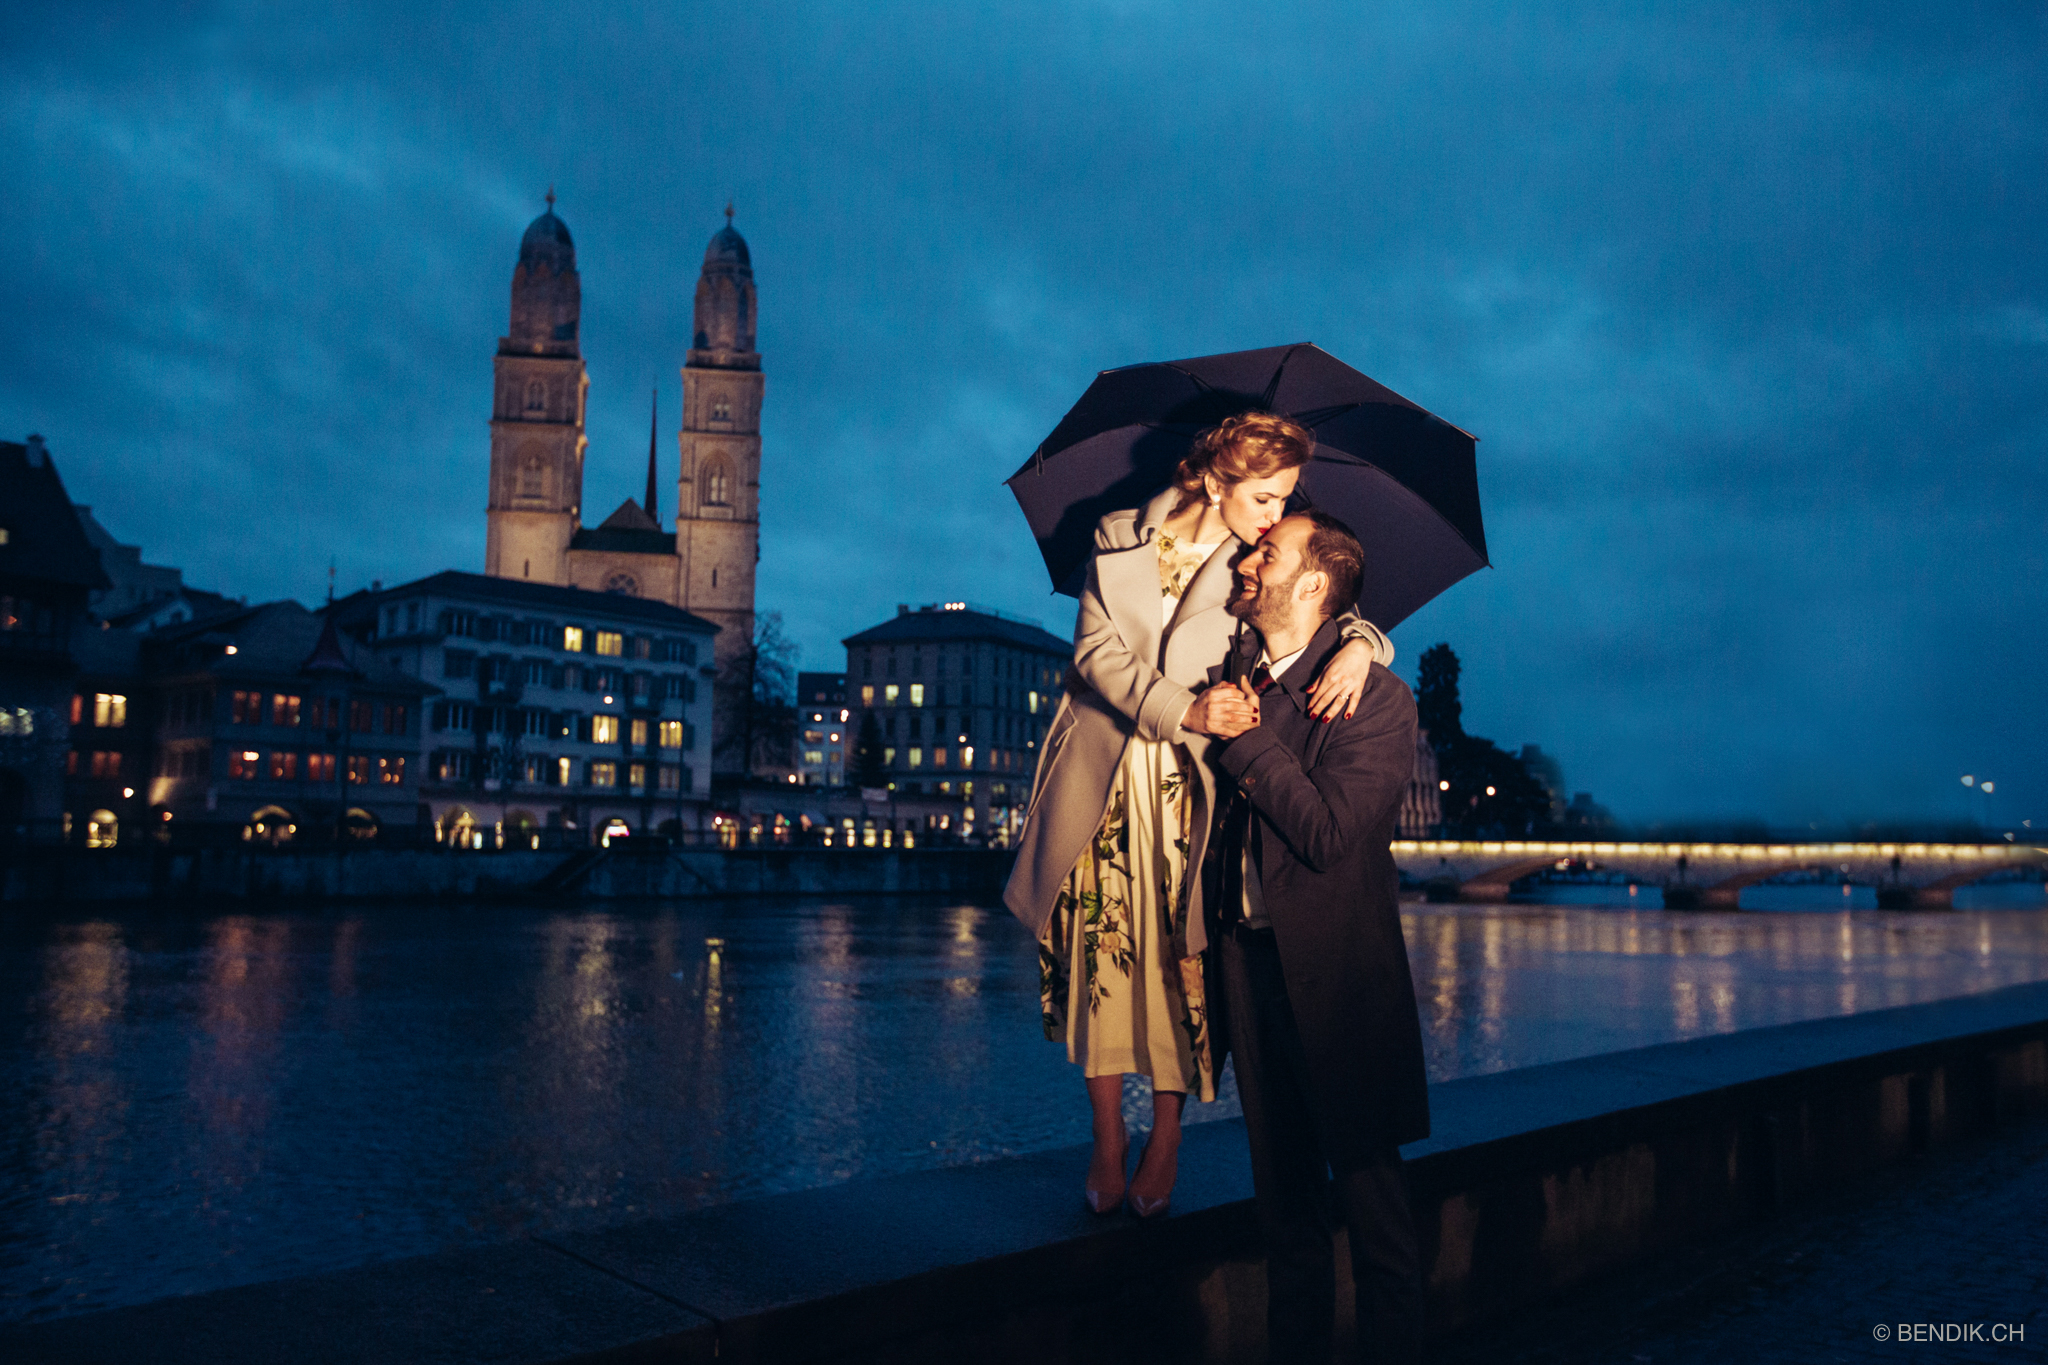 s_wedding_photoshoot_zurich_s_a_20161118_148